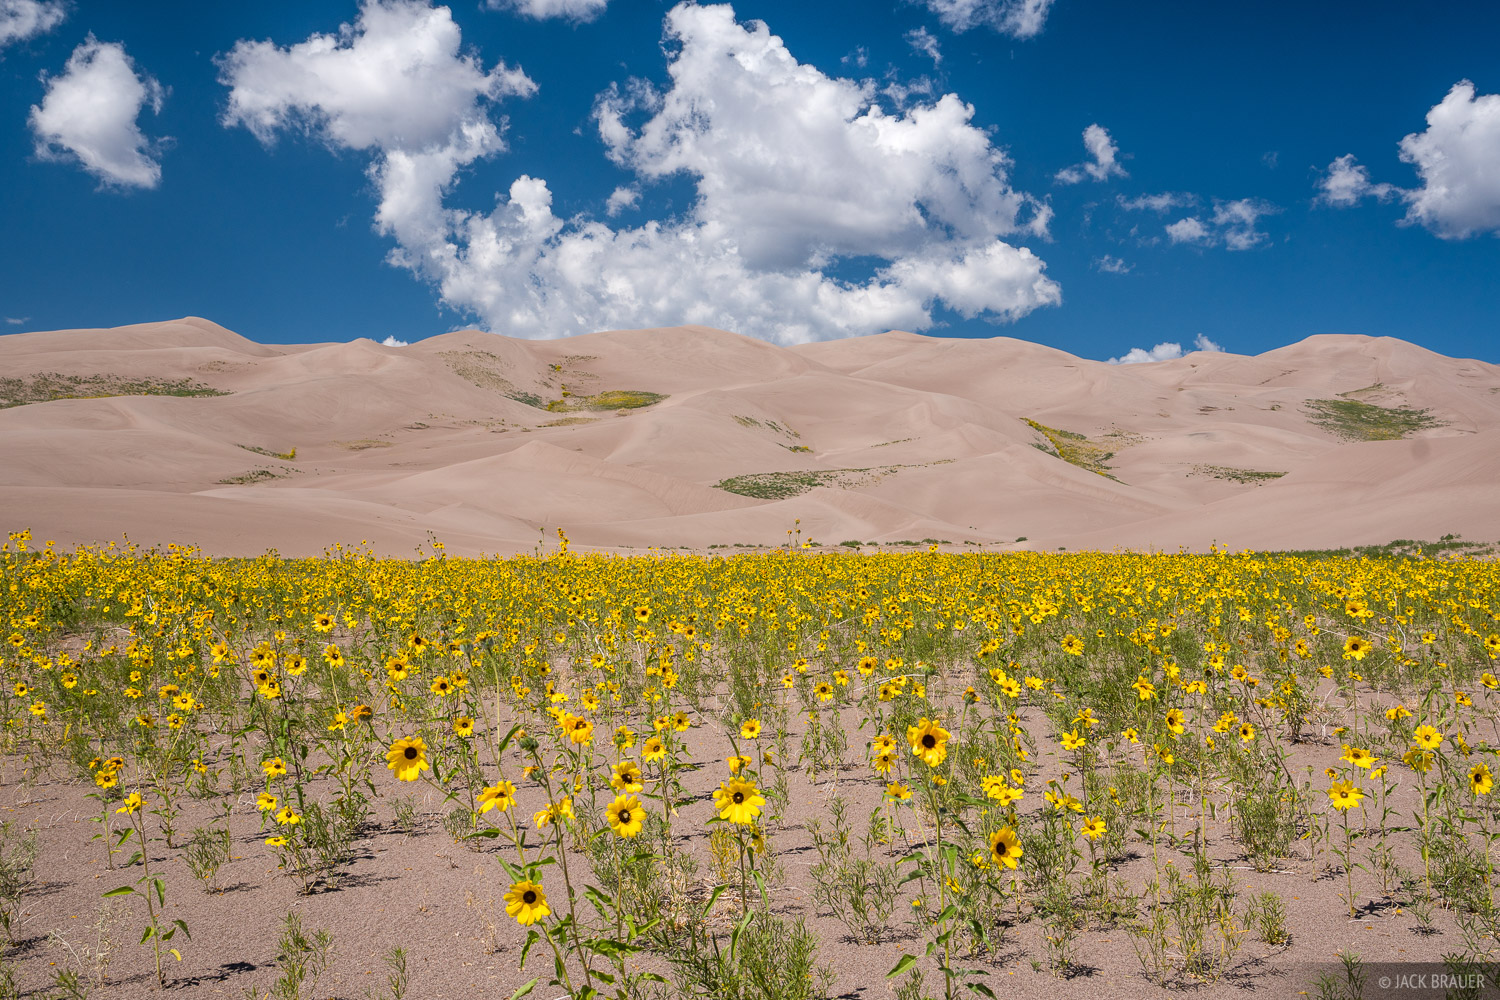 Praire sunflowers in the Great Sand Dunes.